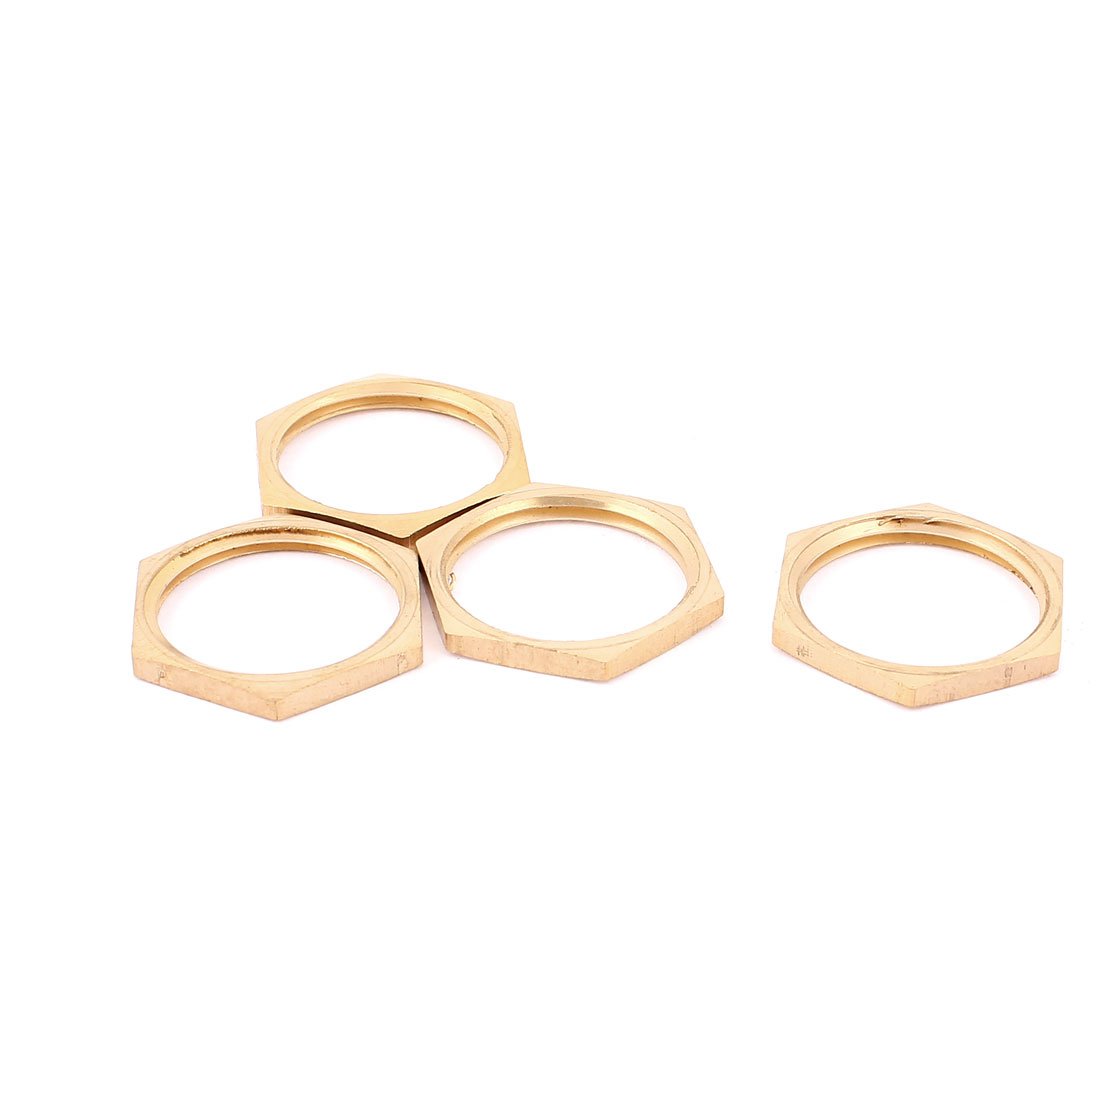 1BSP Female Thread Brass Pipe Fitting Hex Lock Nut 4pcs